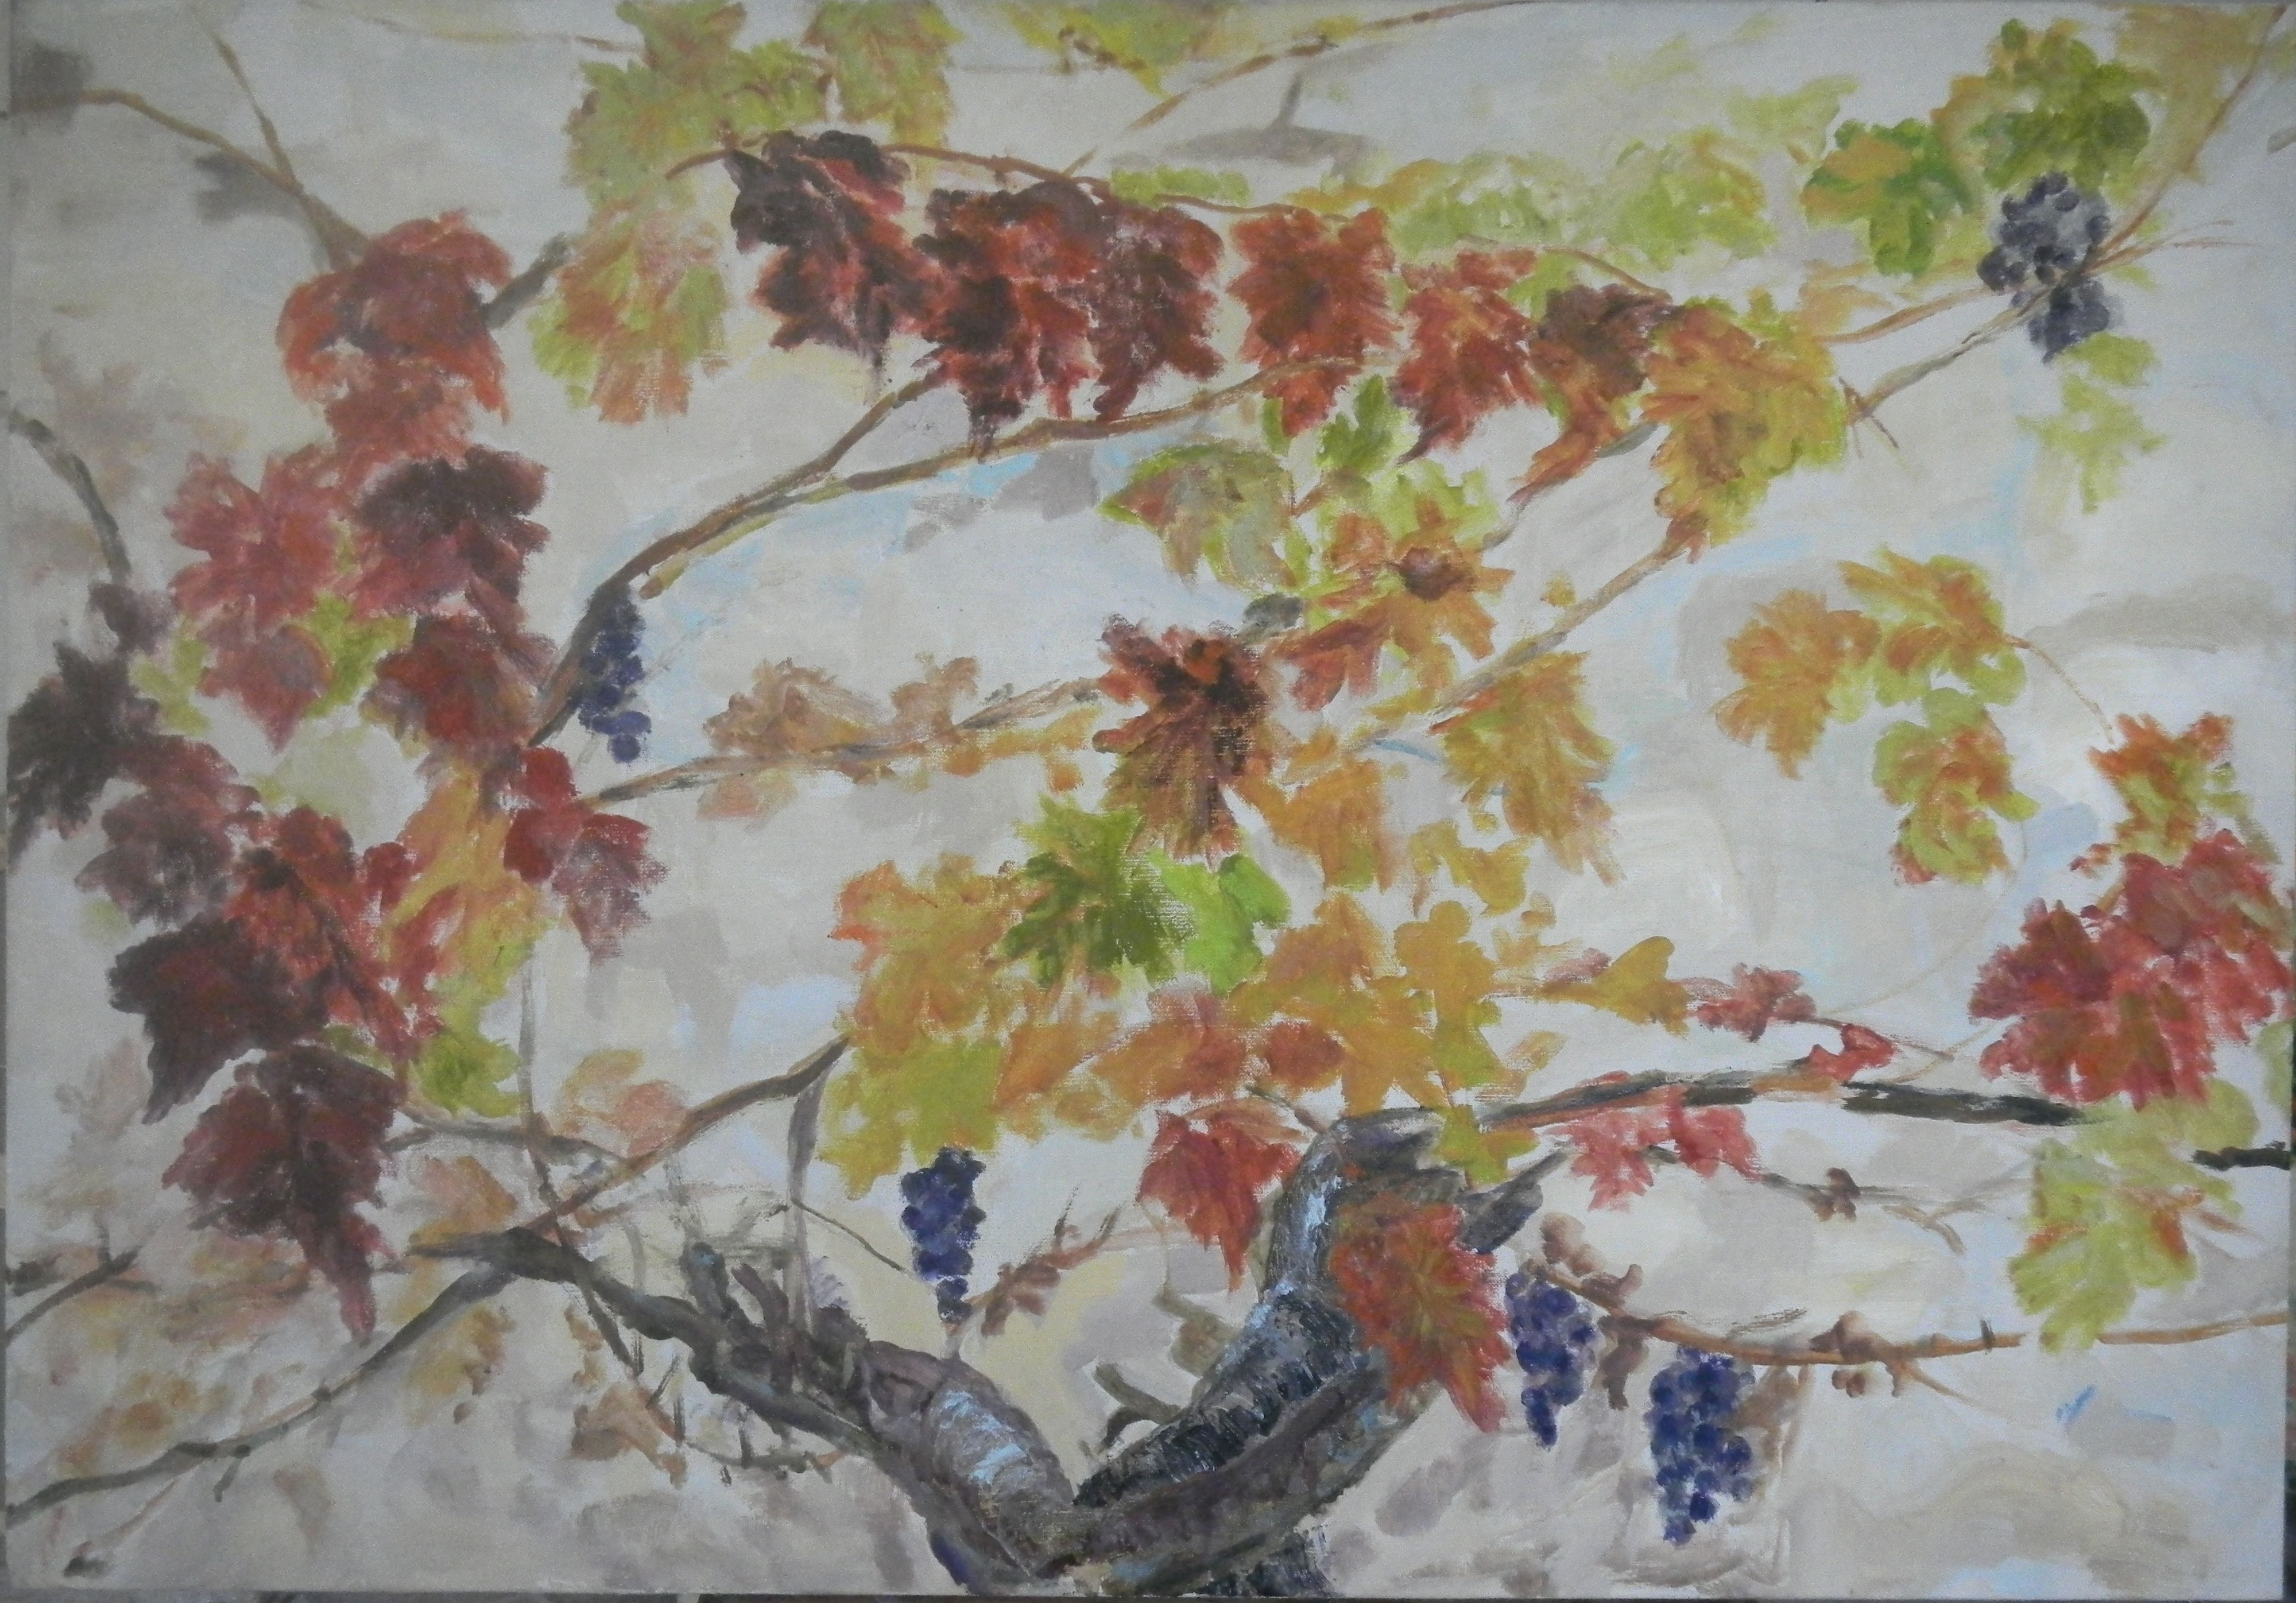 Image of - Feuilles Rouges en Automne (Red Leaves in Autumn)